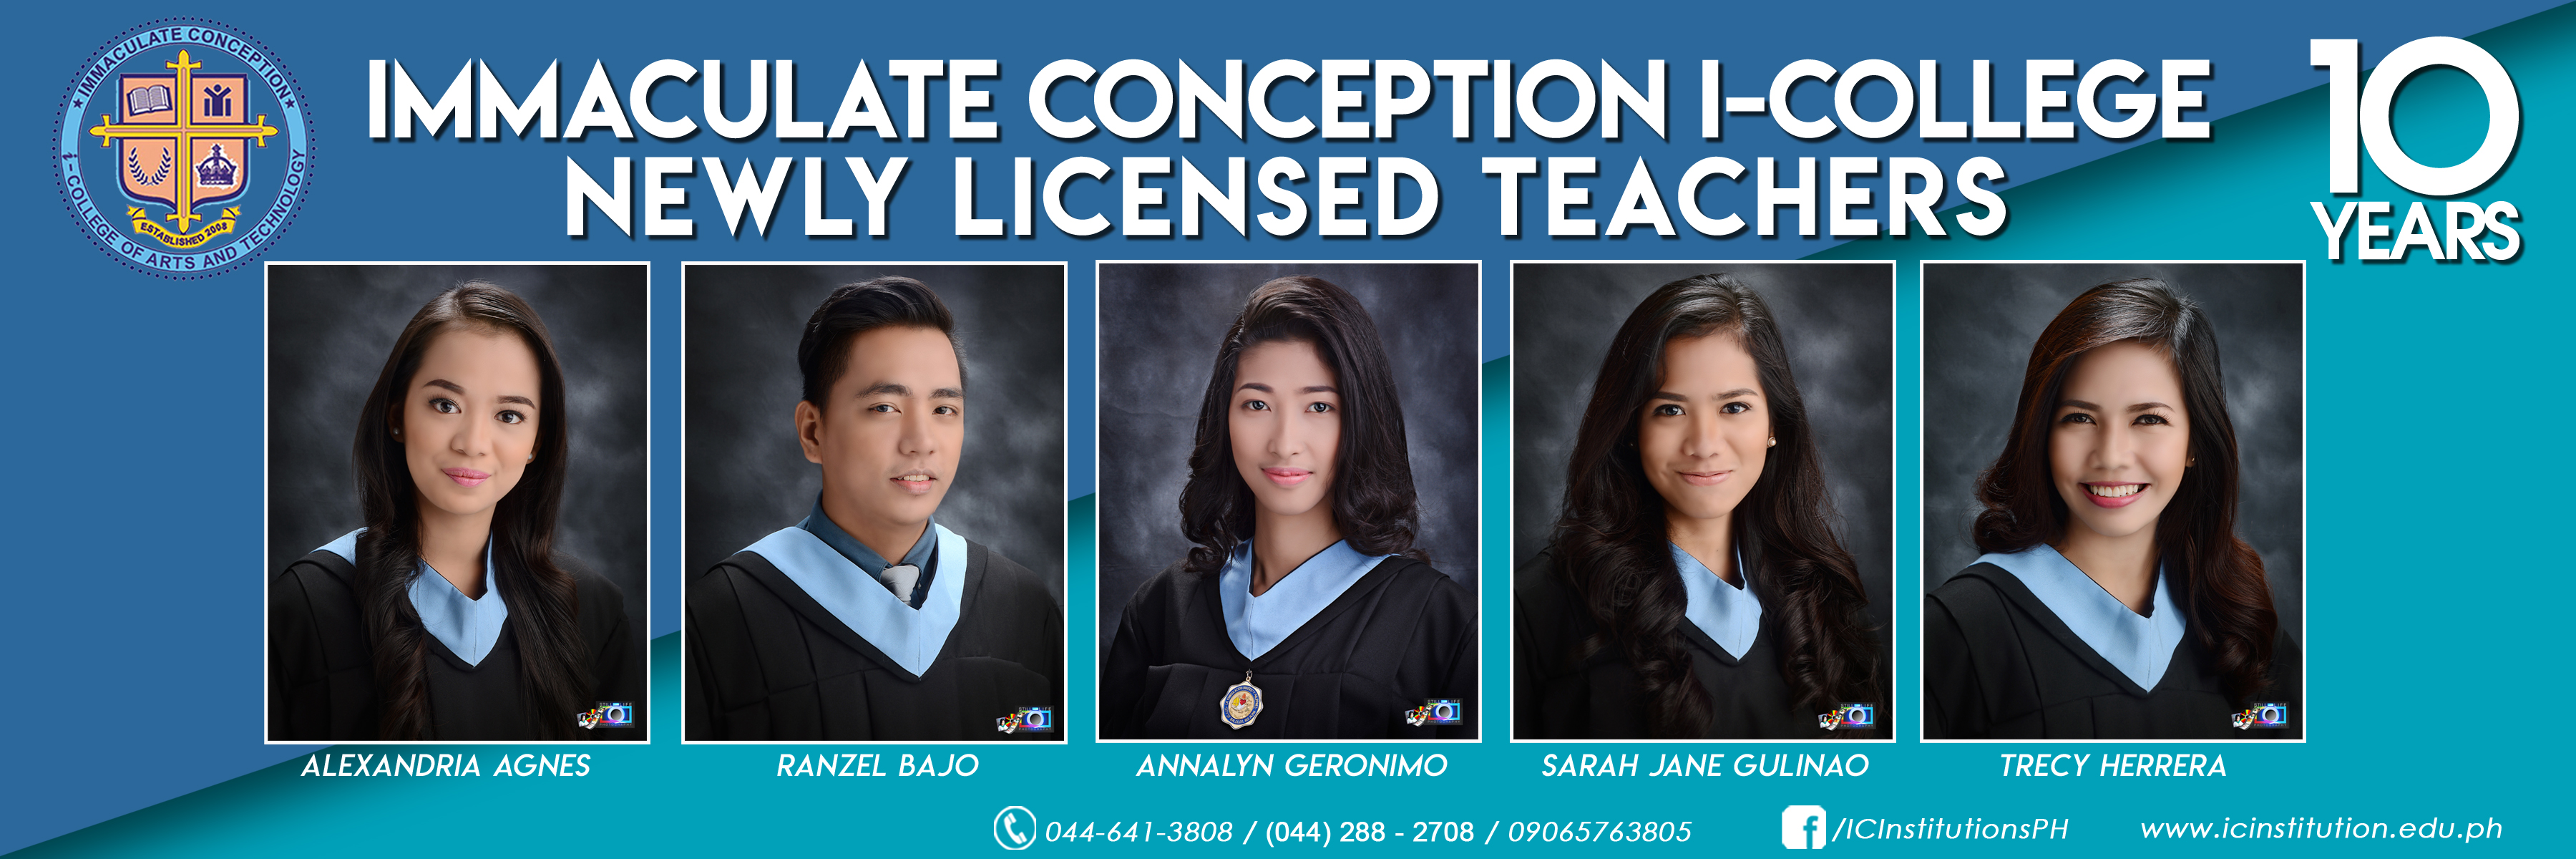 Congratulations, ICI's Newly Licensed Teachers!